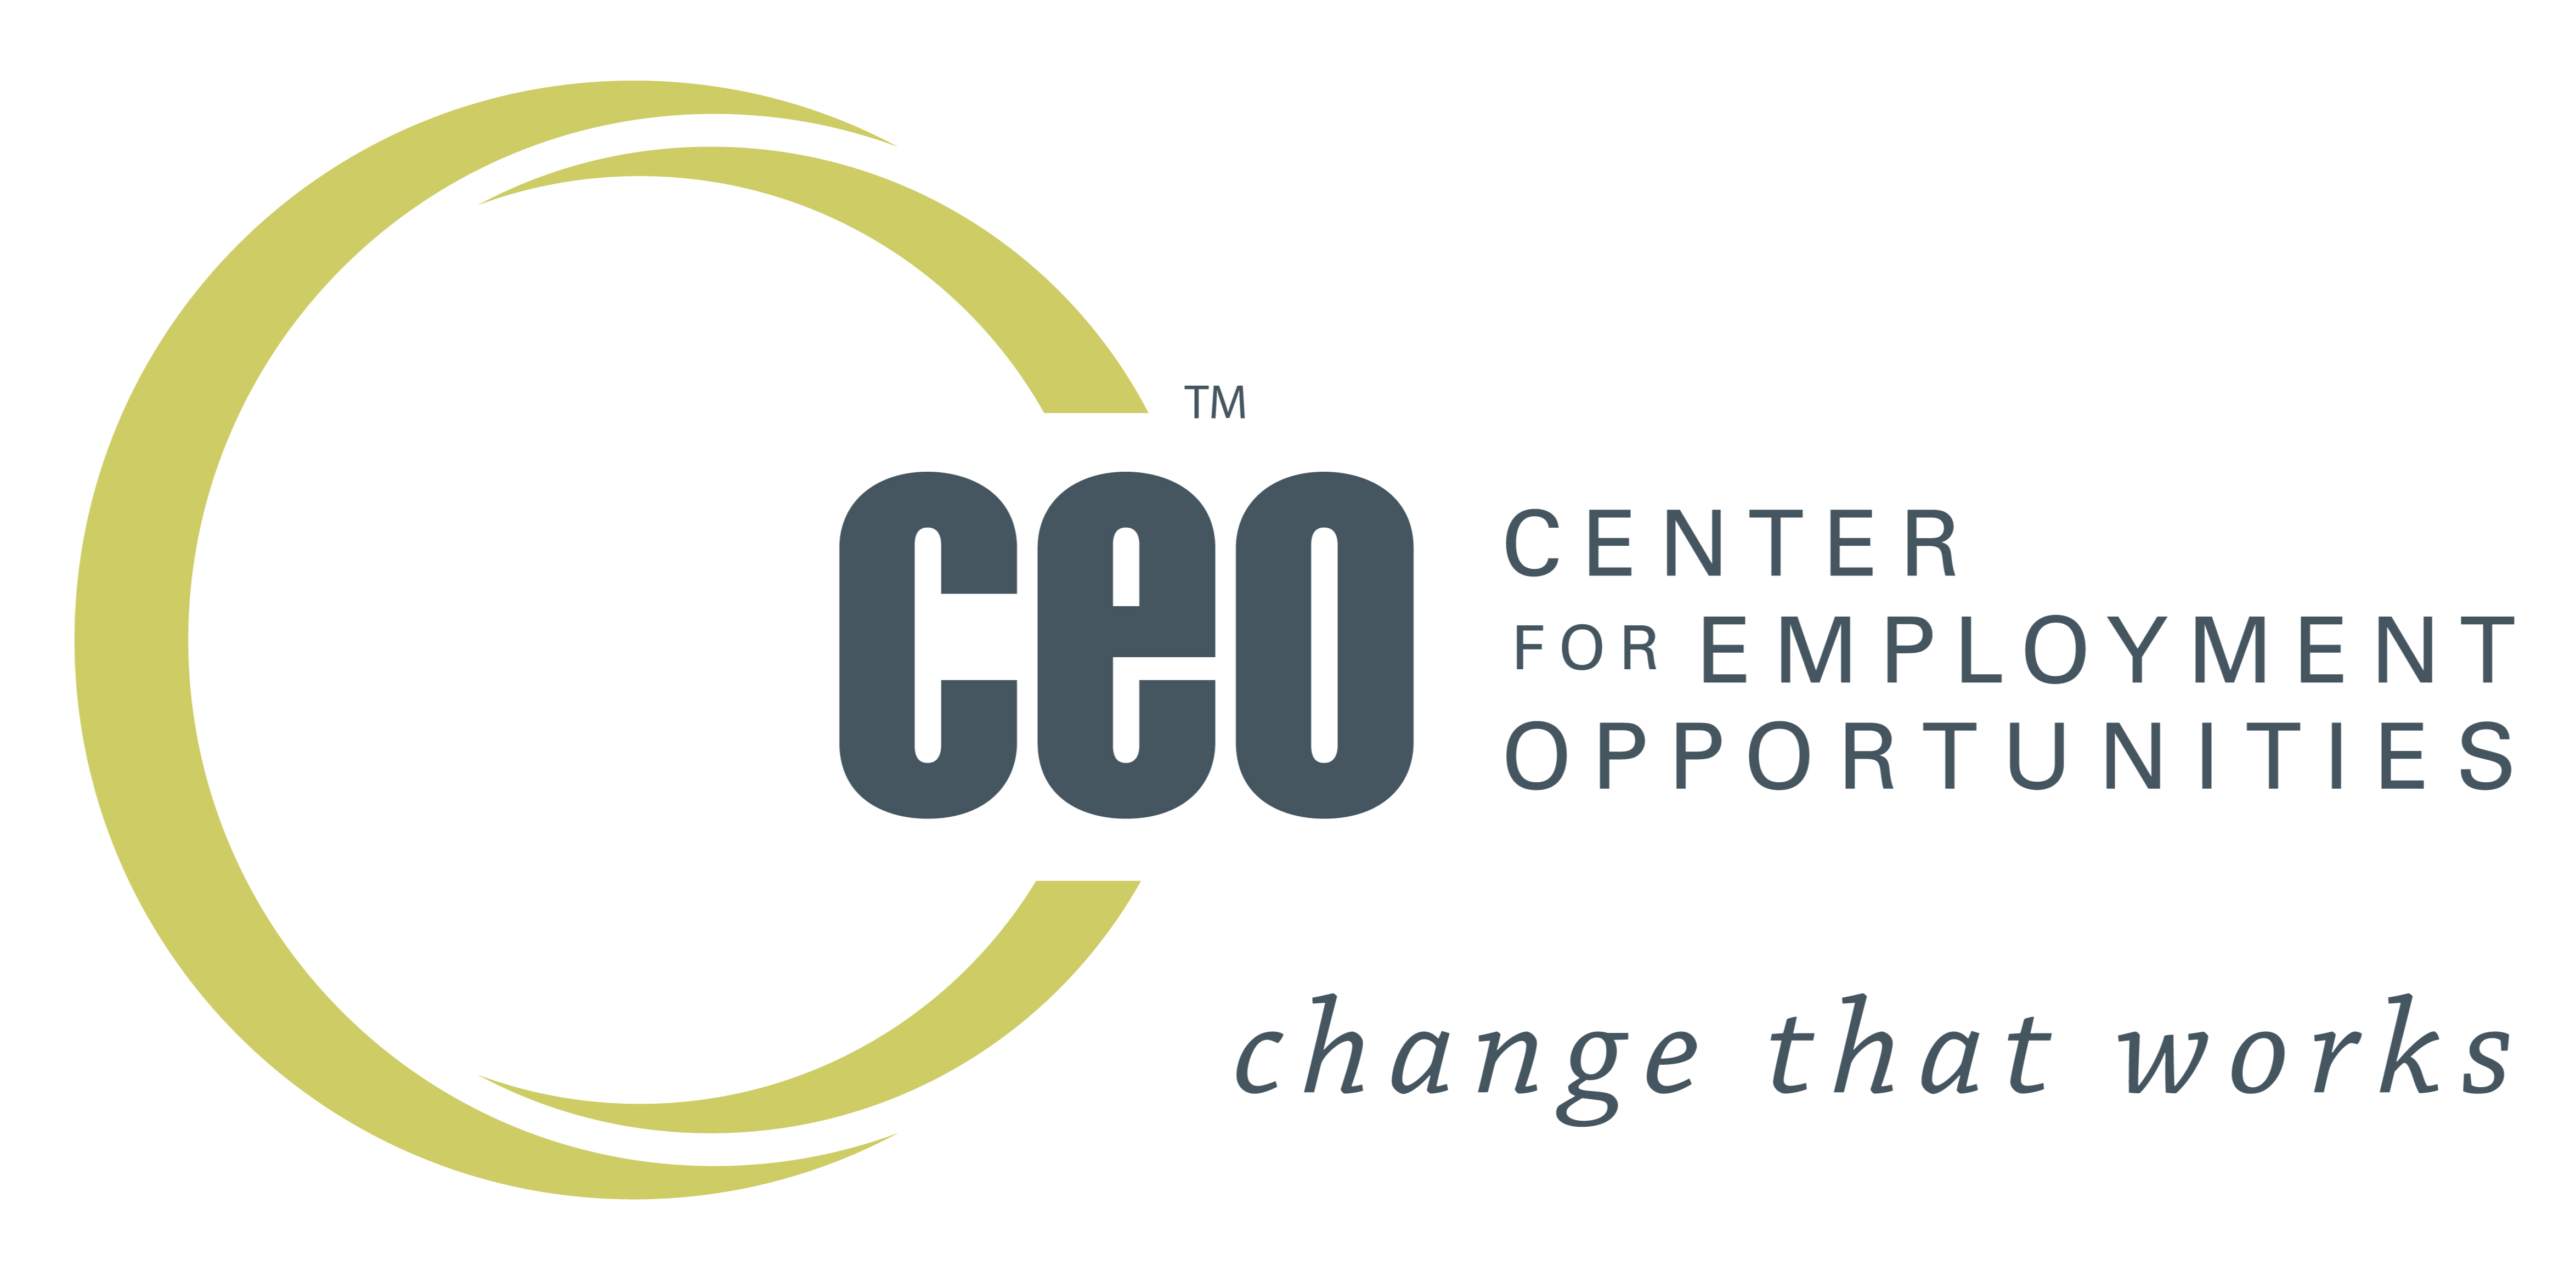 Service@Haas: Volunteer with the Center for Employment Opportunities